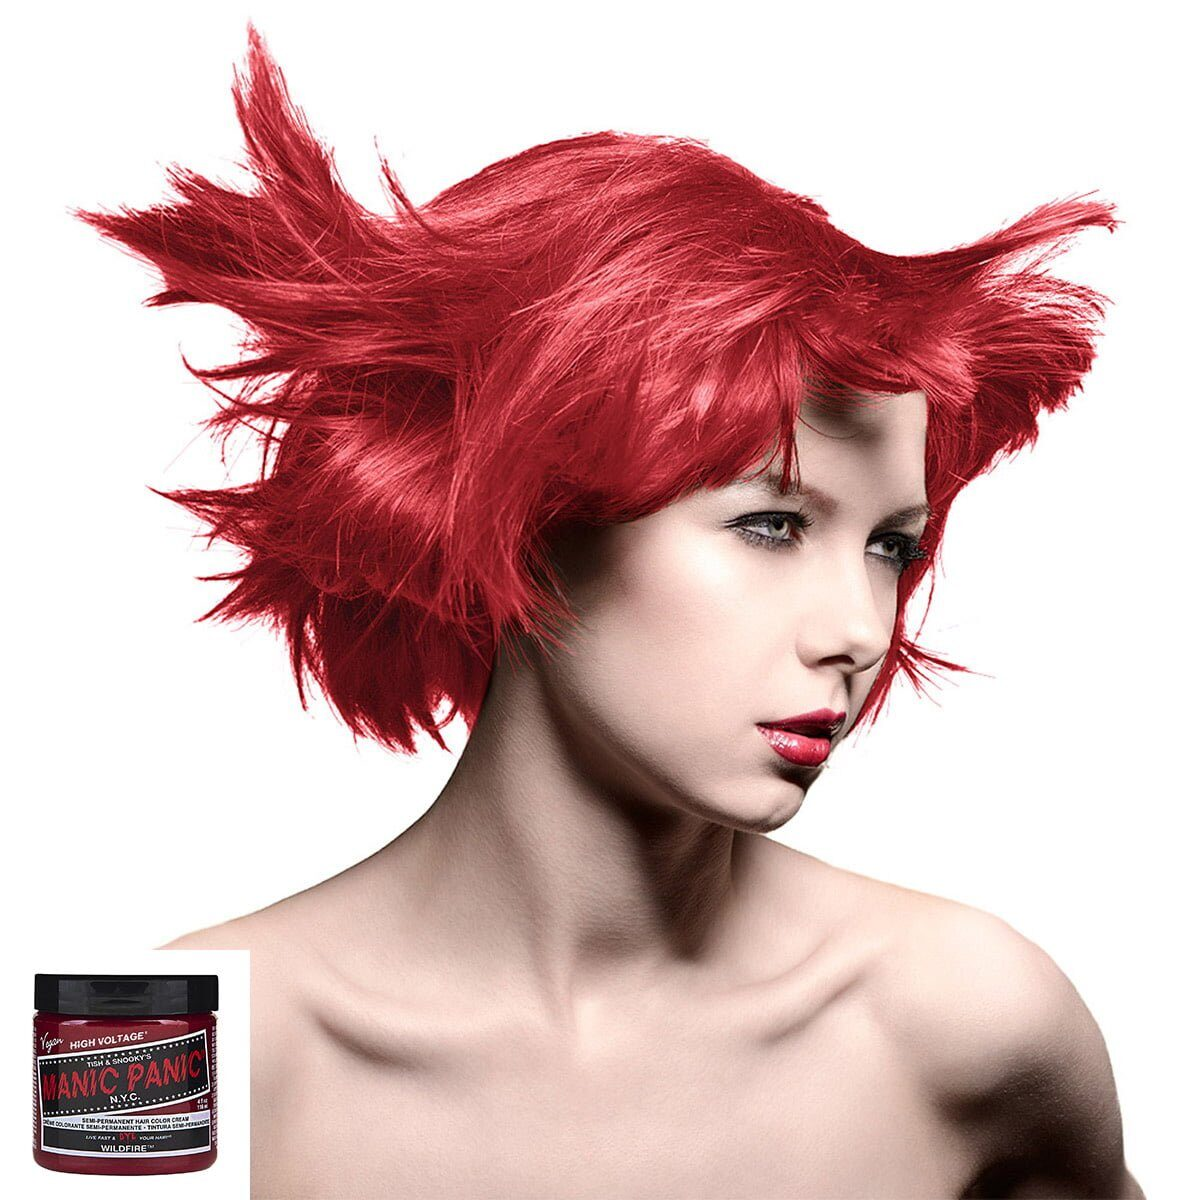 manic panic high voltage rød uv hårfarge 118 ml wildfire classic model 8001